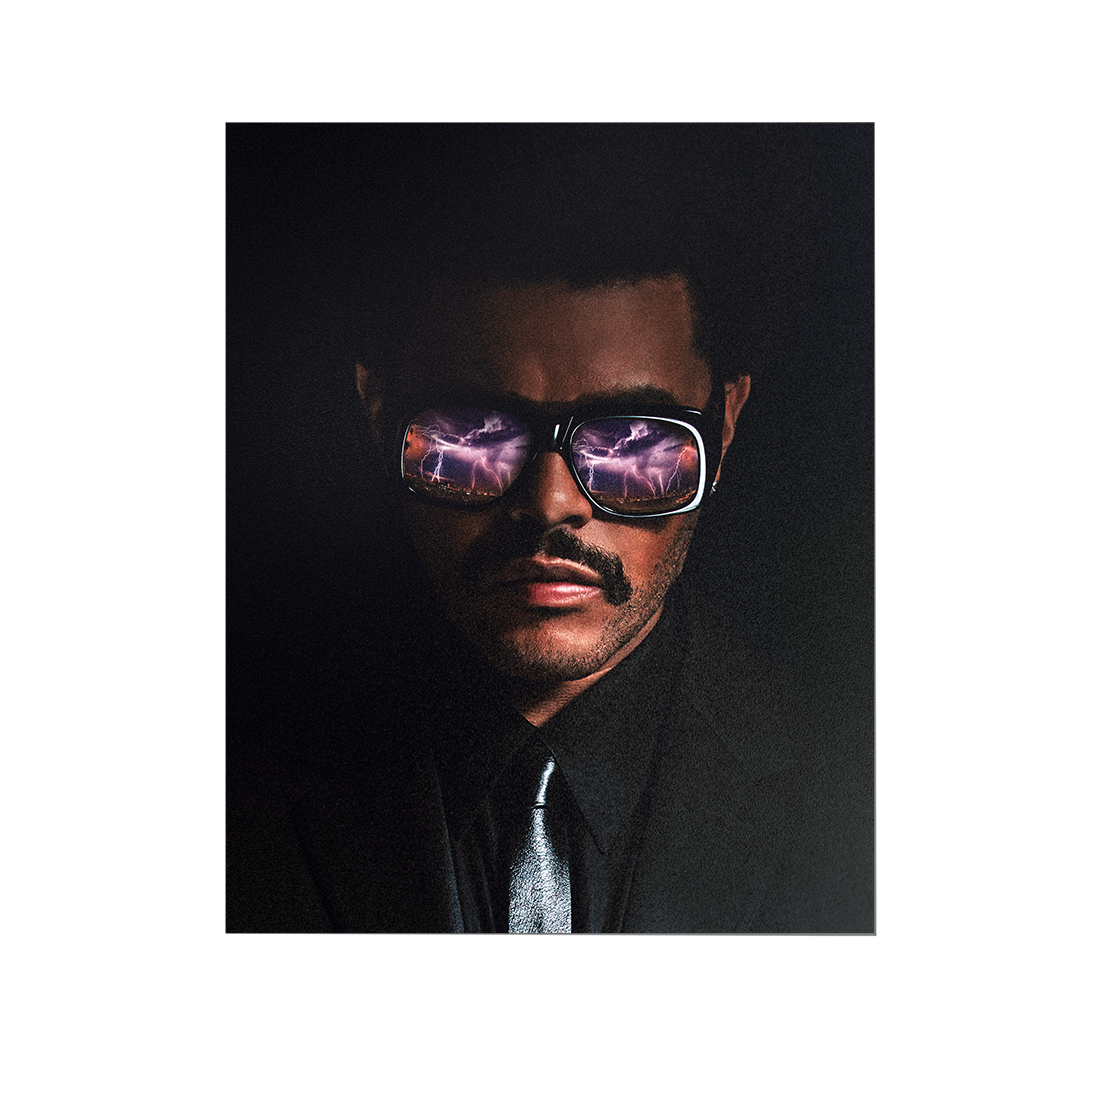 The Weeknd: (SIGNED) AFTER HOURS REMIX POSTER